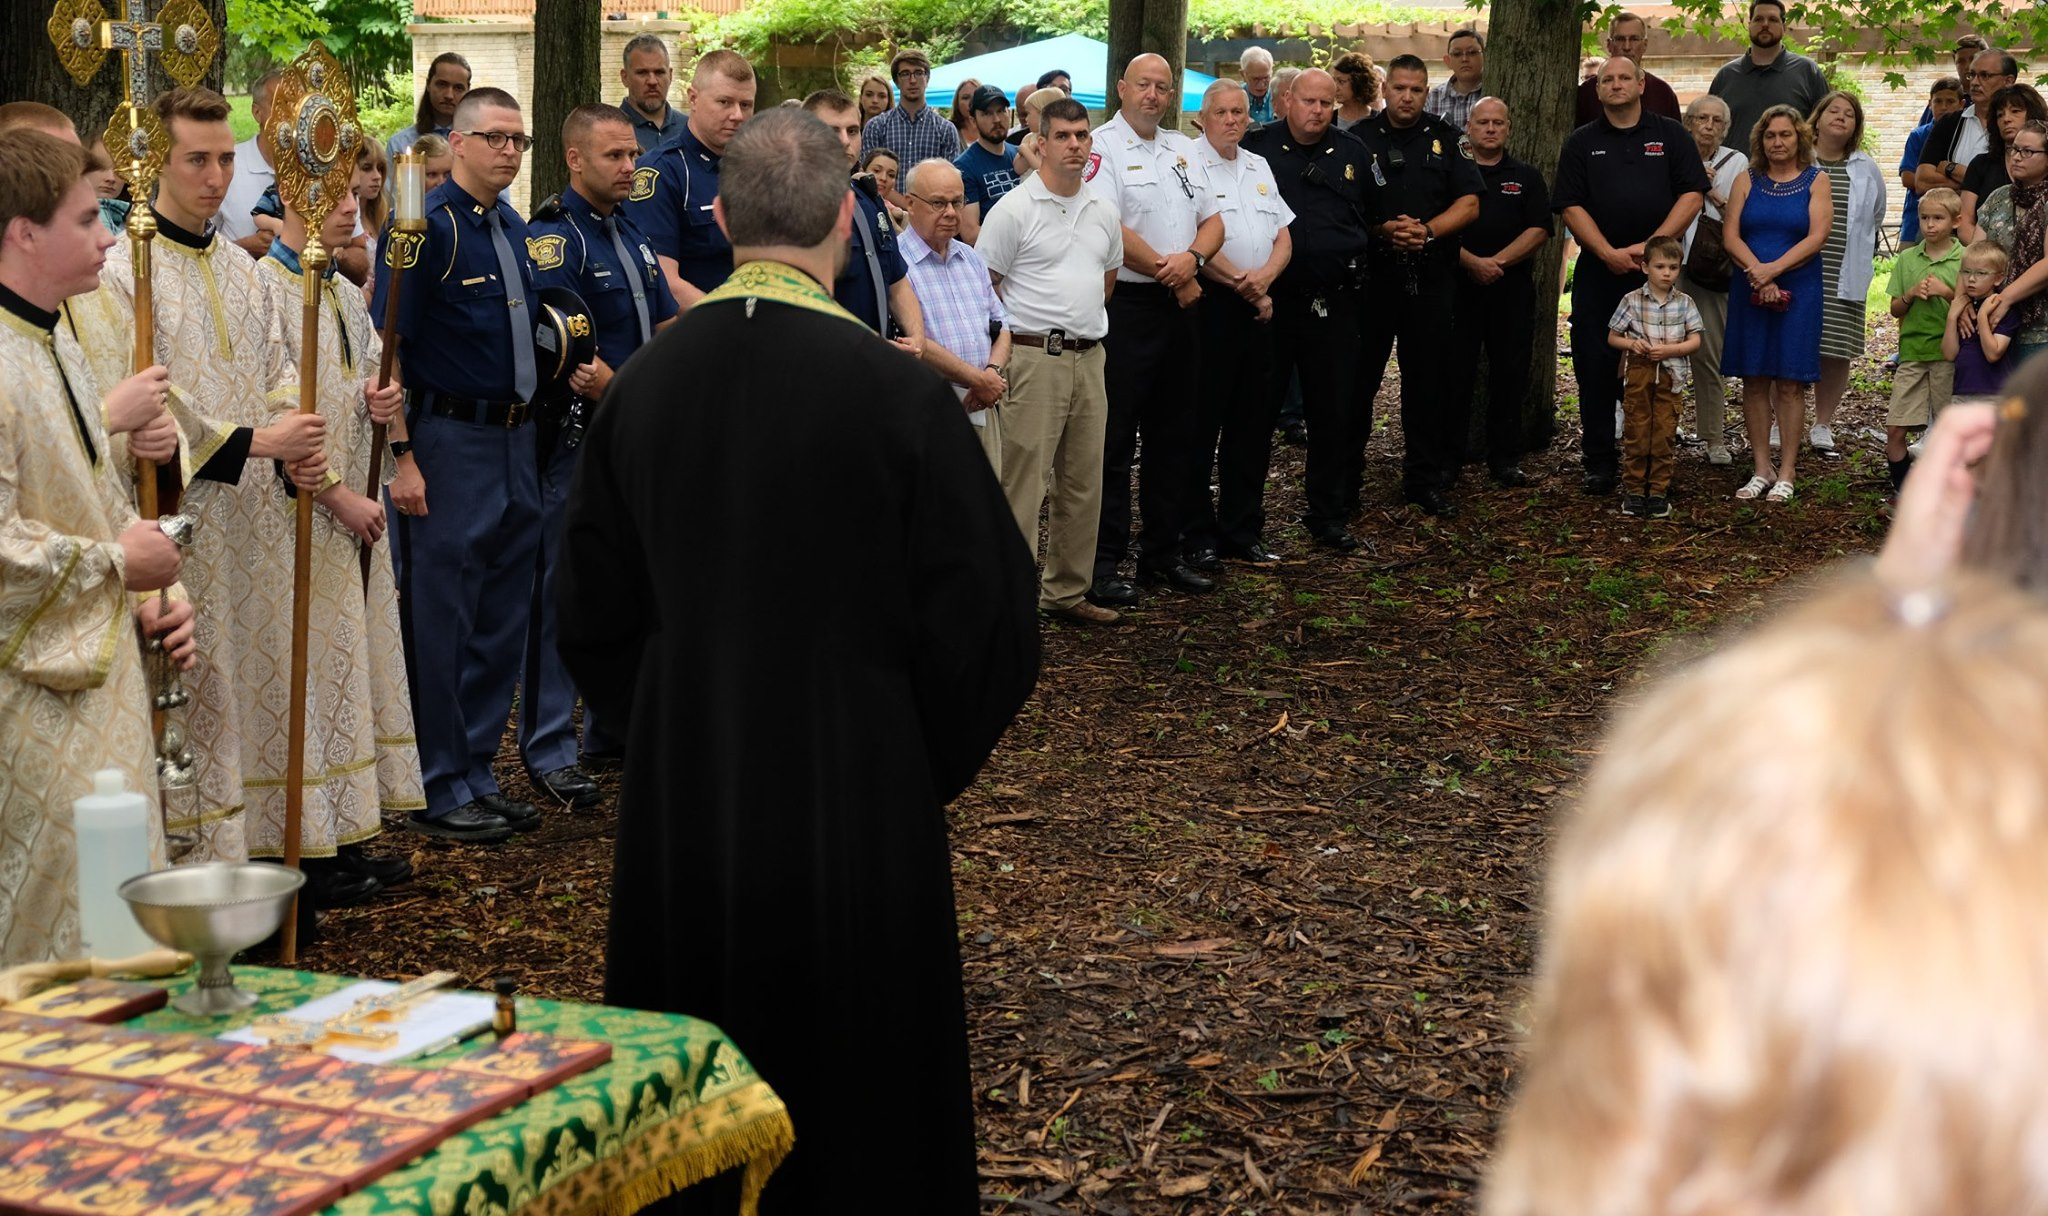 priest facing crowd of parishioners and first responders